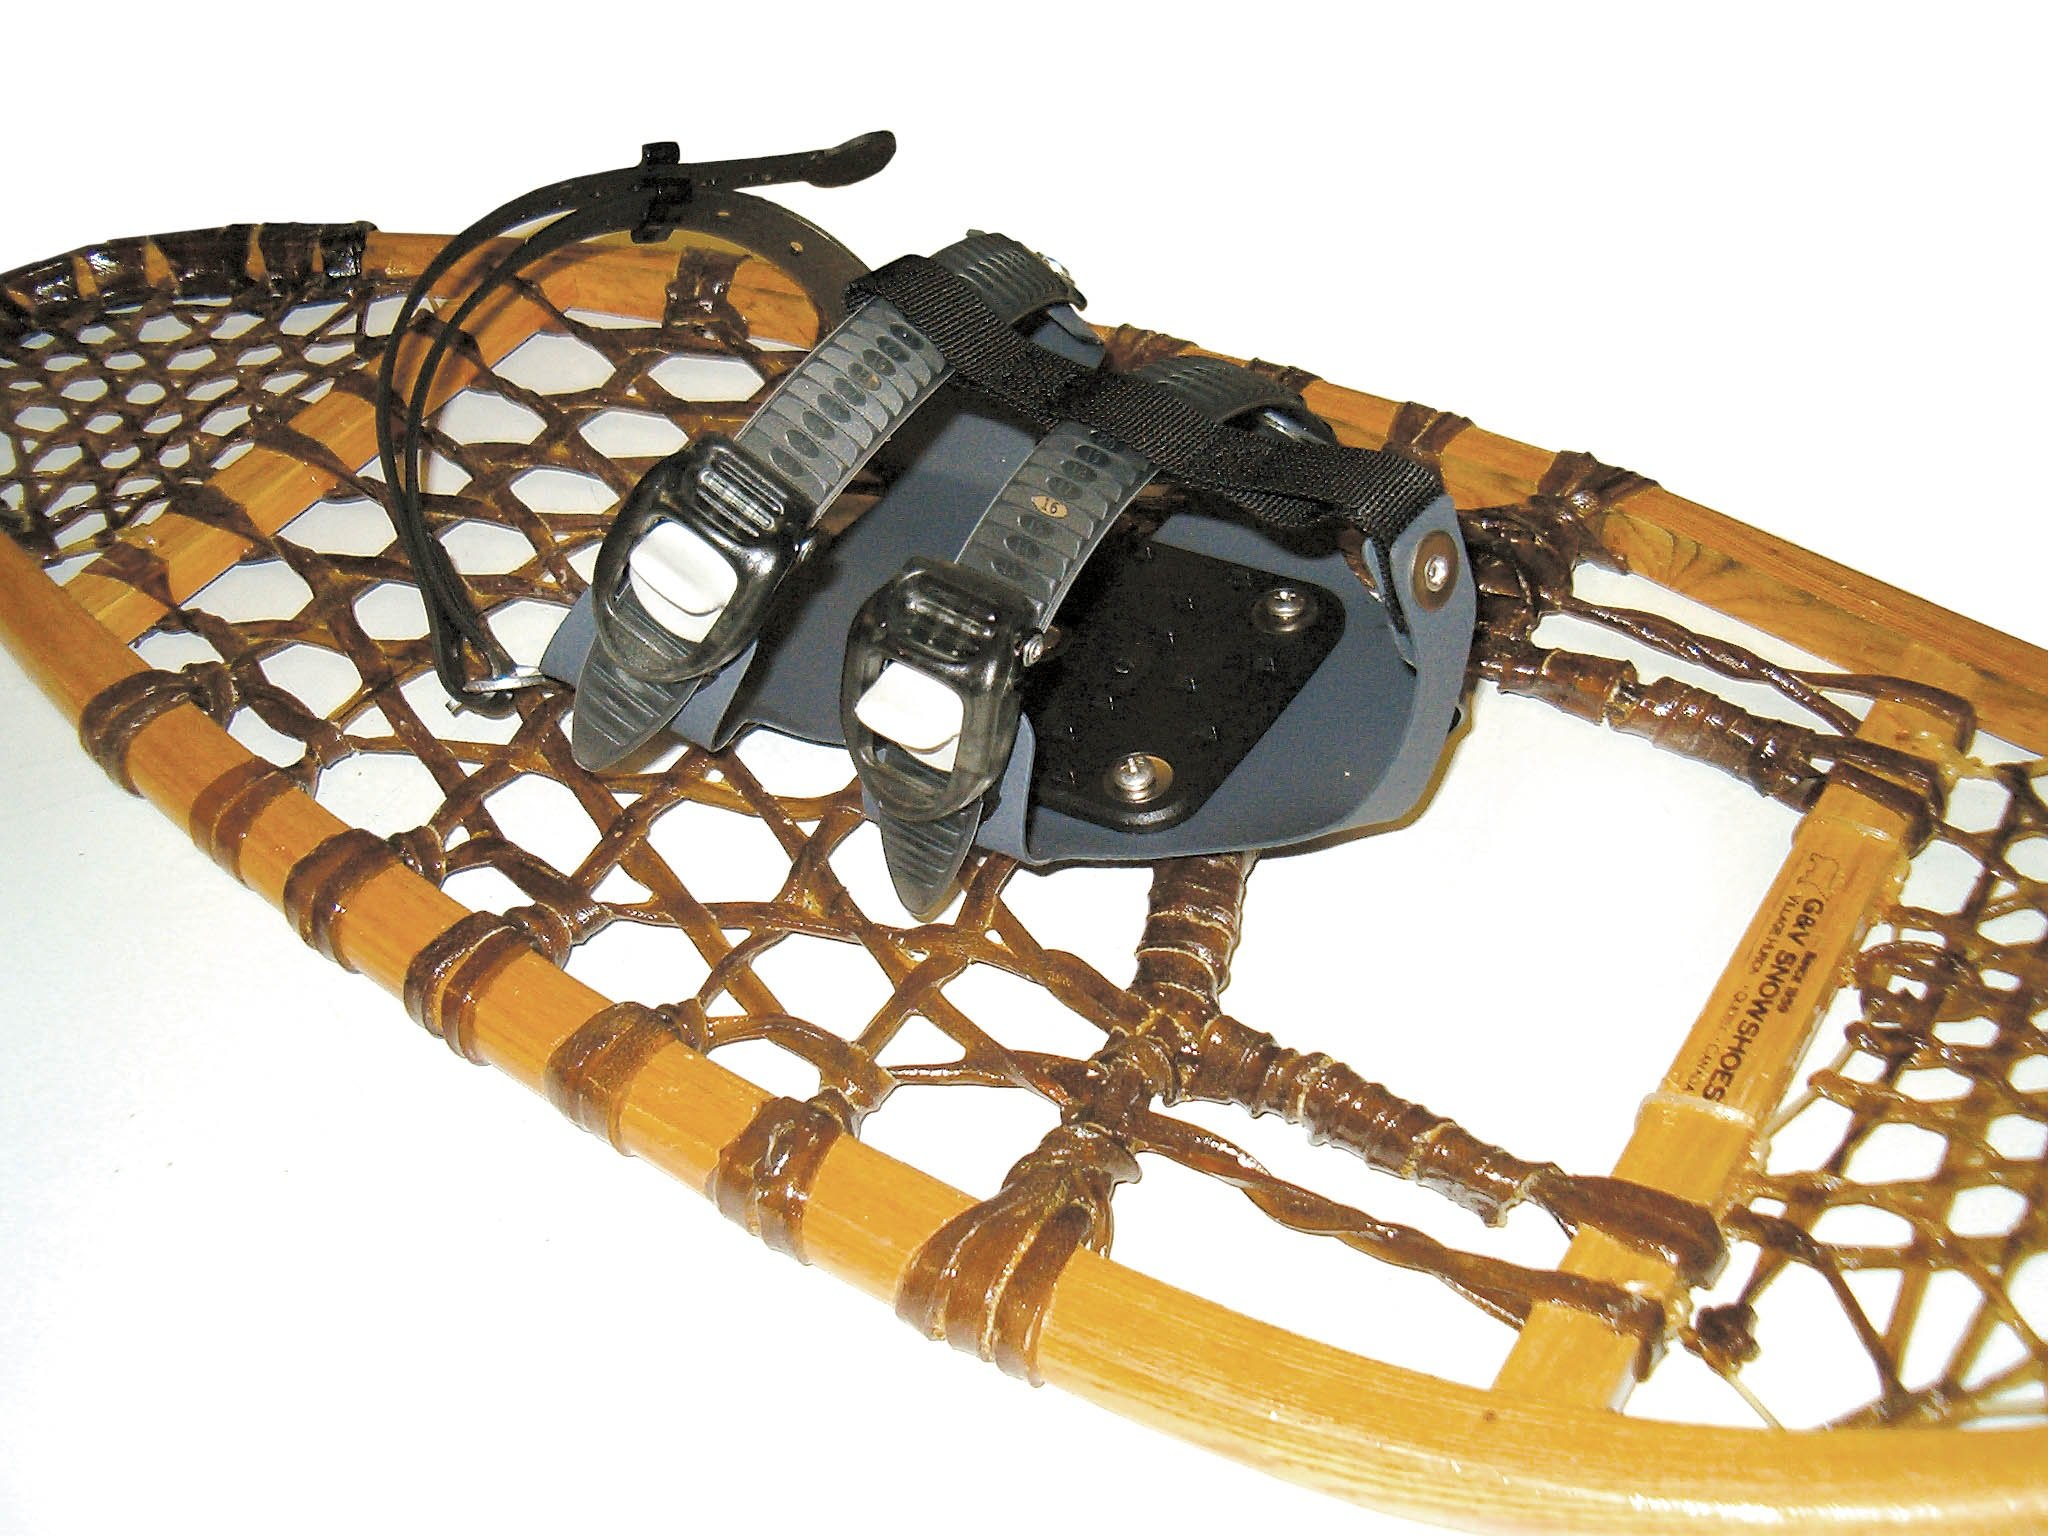 GV Snowshoes Ratchet Technology Snowshoe Bindings, Colors may vary by GV Snowshoes